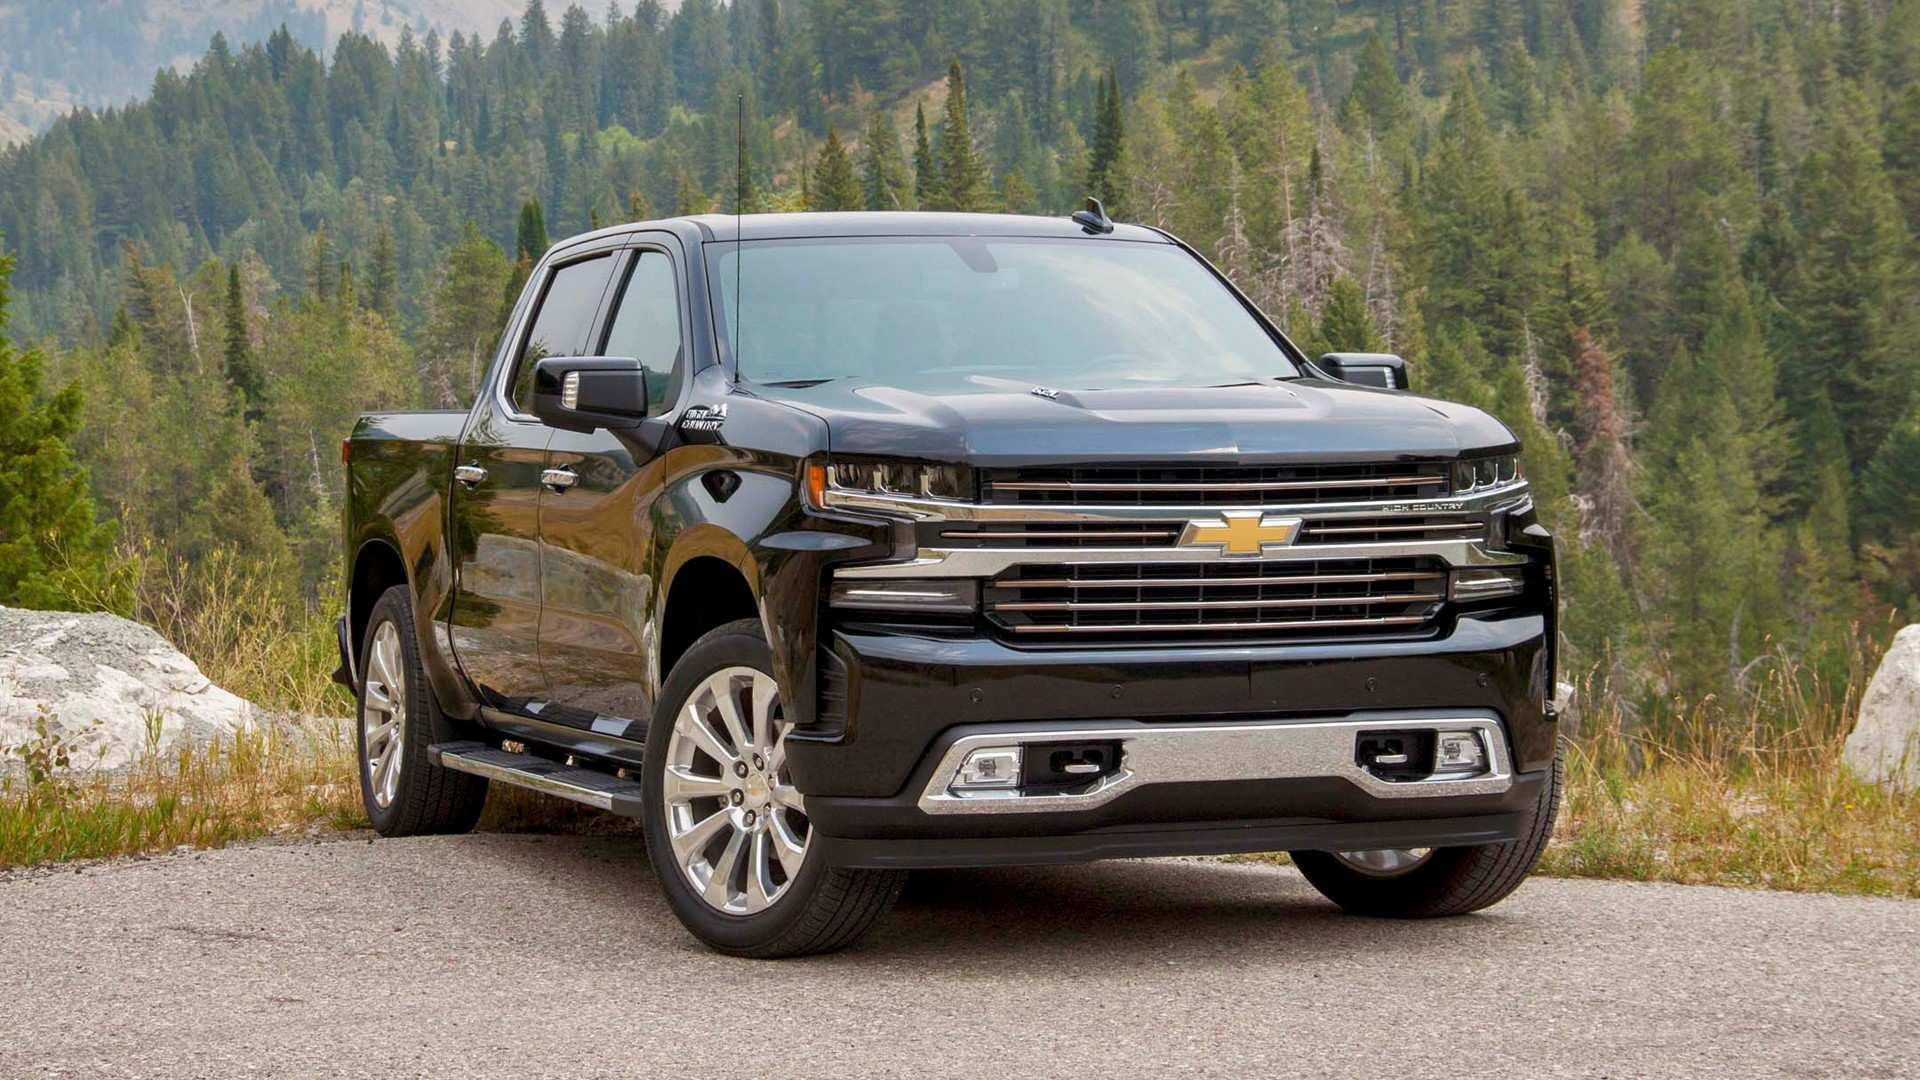 84 Best Review New 2019 Chevrolet Silverado Interior Specs And Review Engine for New 2019 Chevrolet Silverado Interior Specs And Review